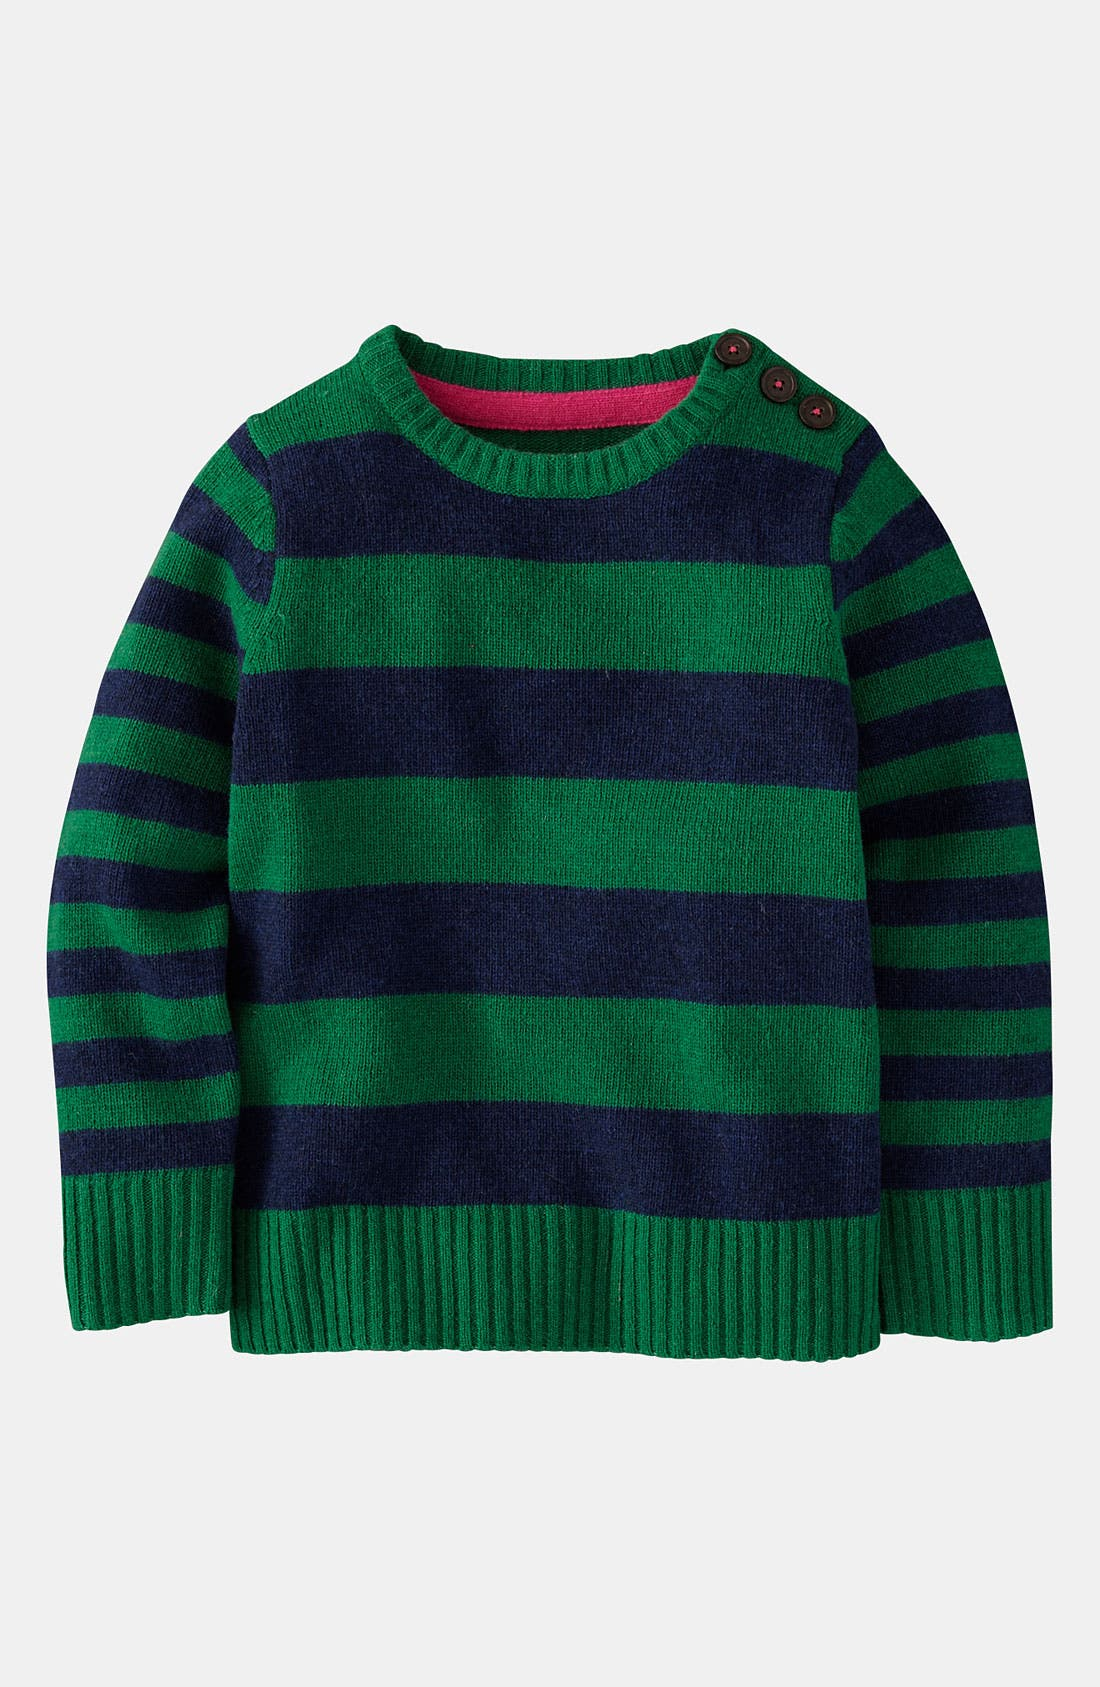 Alternate Image 1 Selected - Mini Boden Sweater (Little Boys & Big Boys)